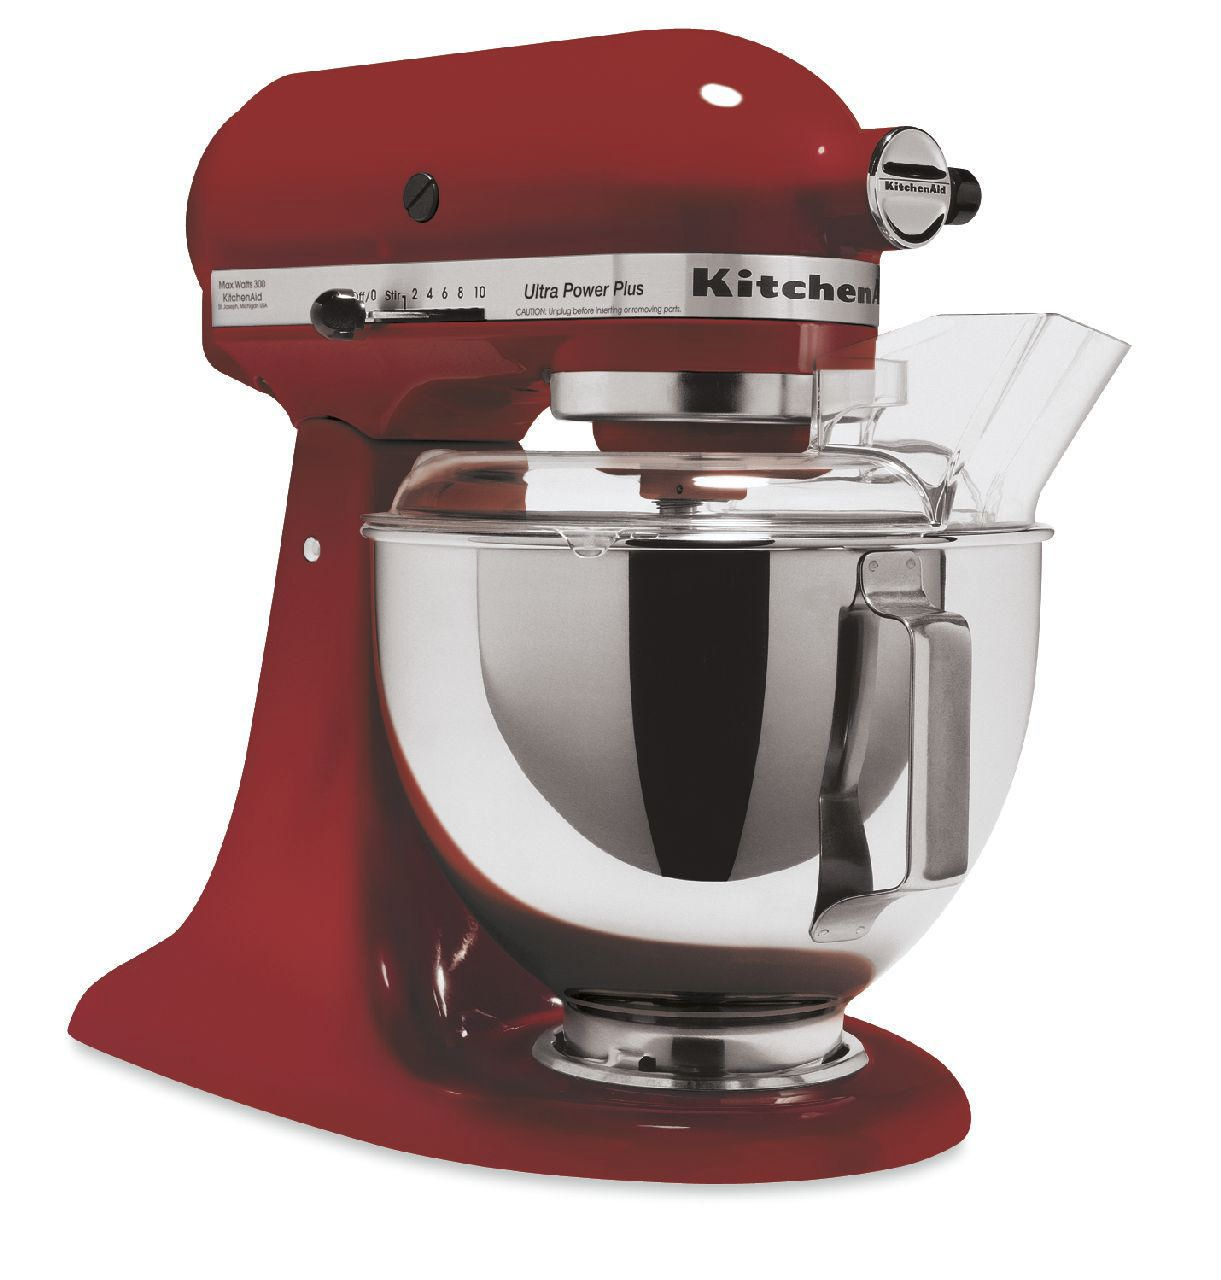 kitchen aid service table with bench seat kitchenaid ultra power plus stand mixer walmart canada